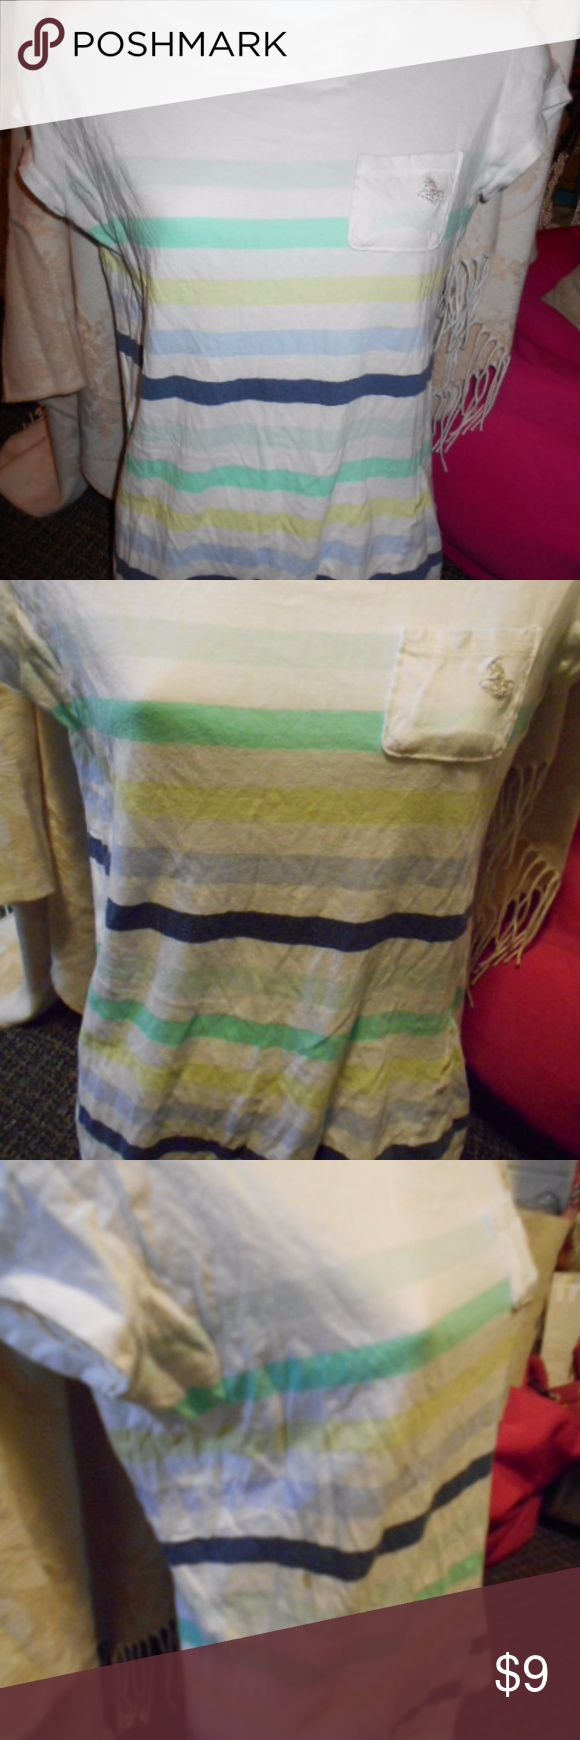 Striped Tshirt with Front Pocket New, Adorable Tshirt with mini front pocket and stripes. Size Small-Medium. Urban Outfitters Tops Tees - Short Sleeve